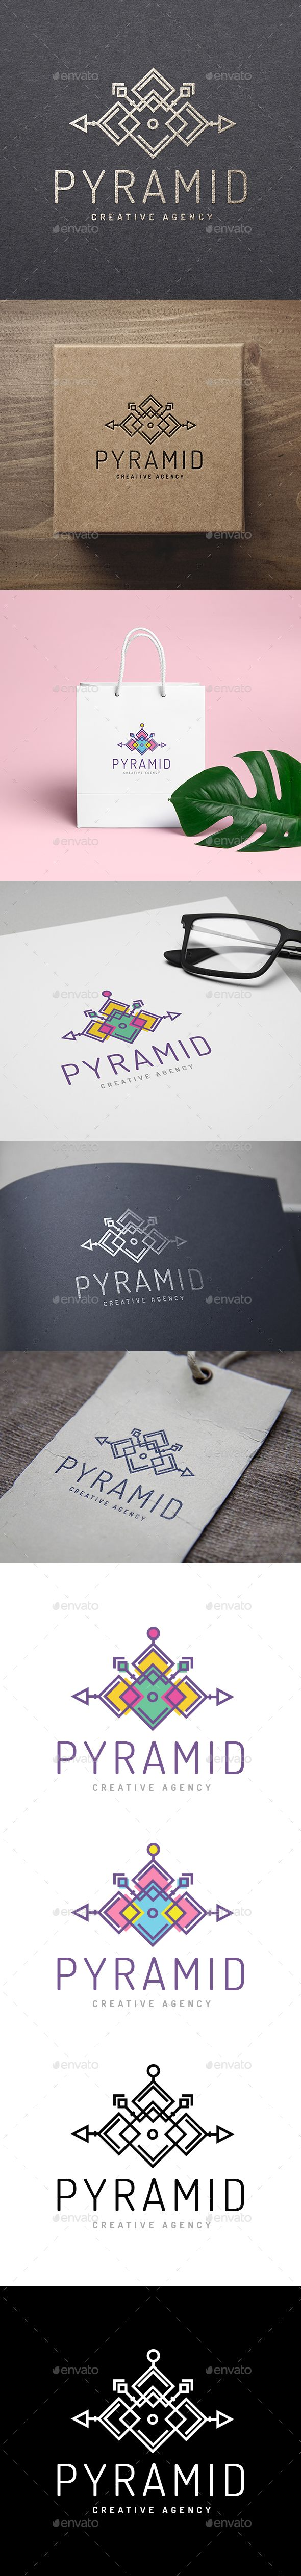 Pyramid Ethnic Logo  — EPS Template #boho #creative • Download ➝ https://graphicriver.net/item/pyramid-ethnic-logo/18392531?ref=pxcr